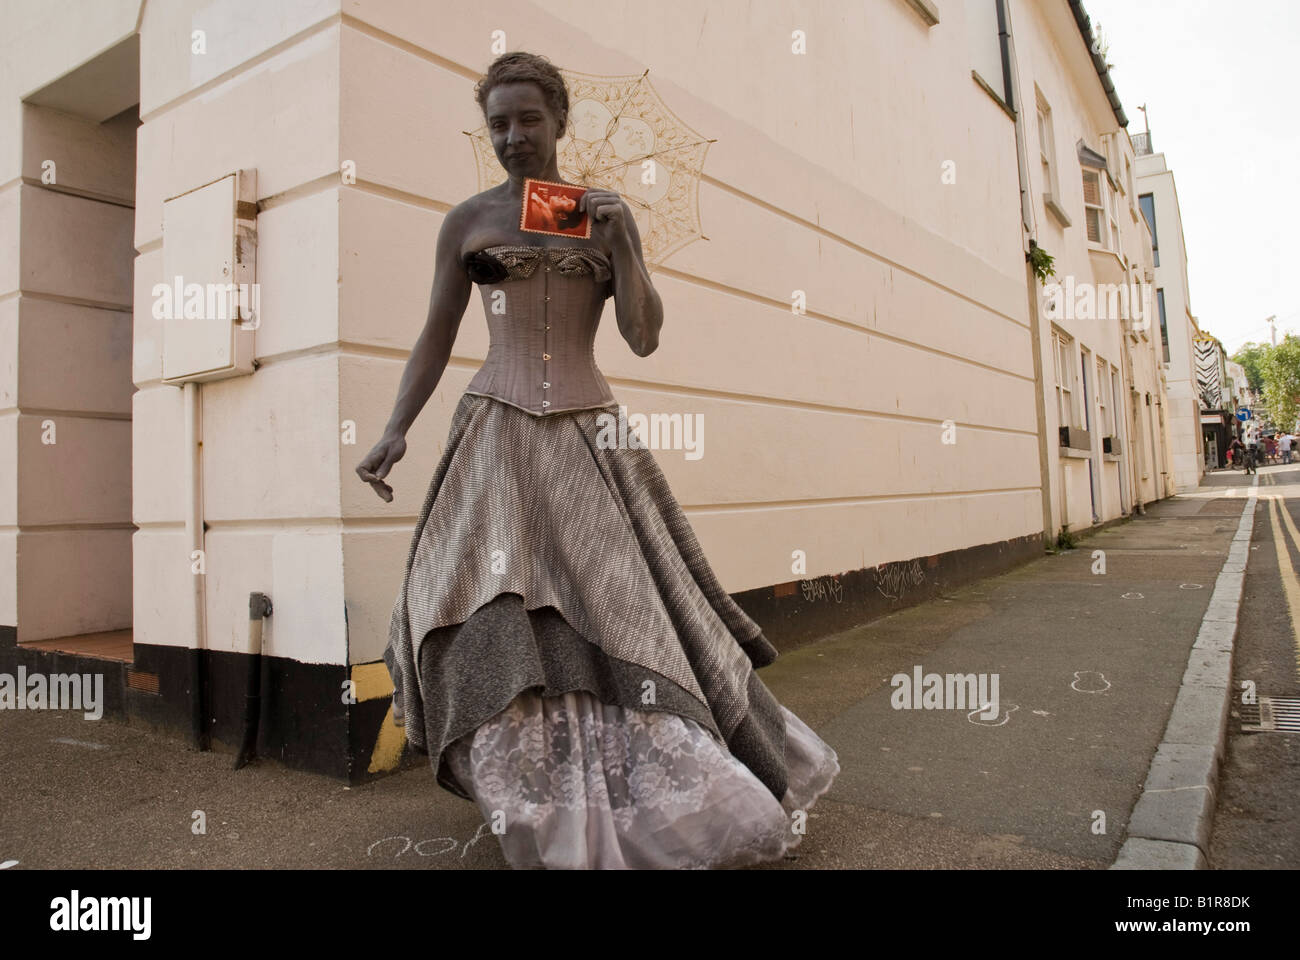 A woman Actor performing street theatre in Brighton - Stock Image